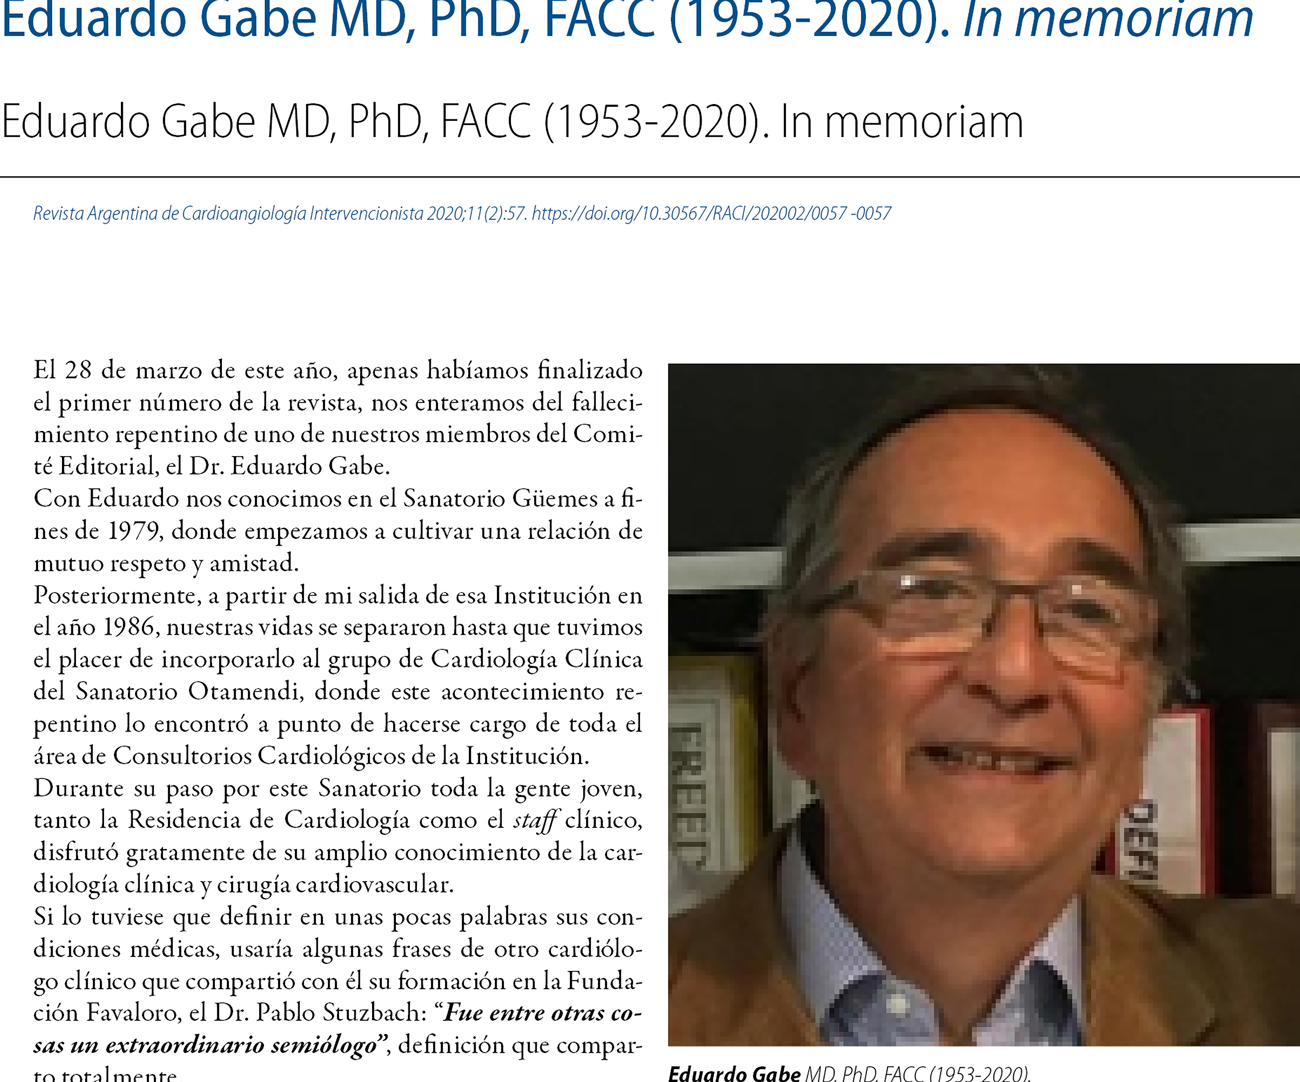 Eduardo Gabe MD, PhD, FACC (1953-2020). In memoriam